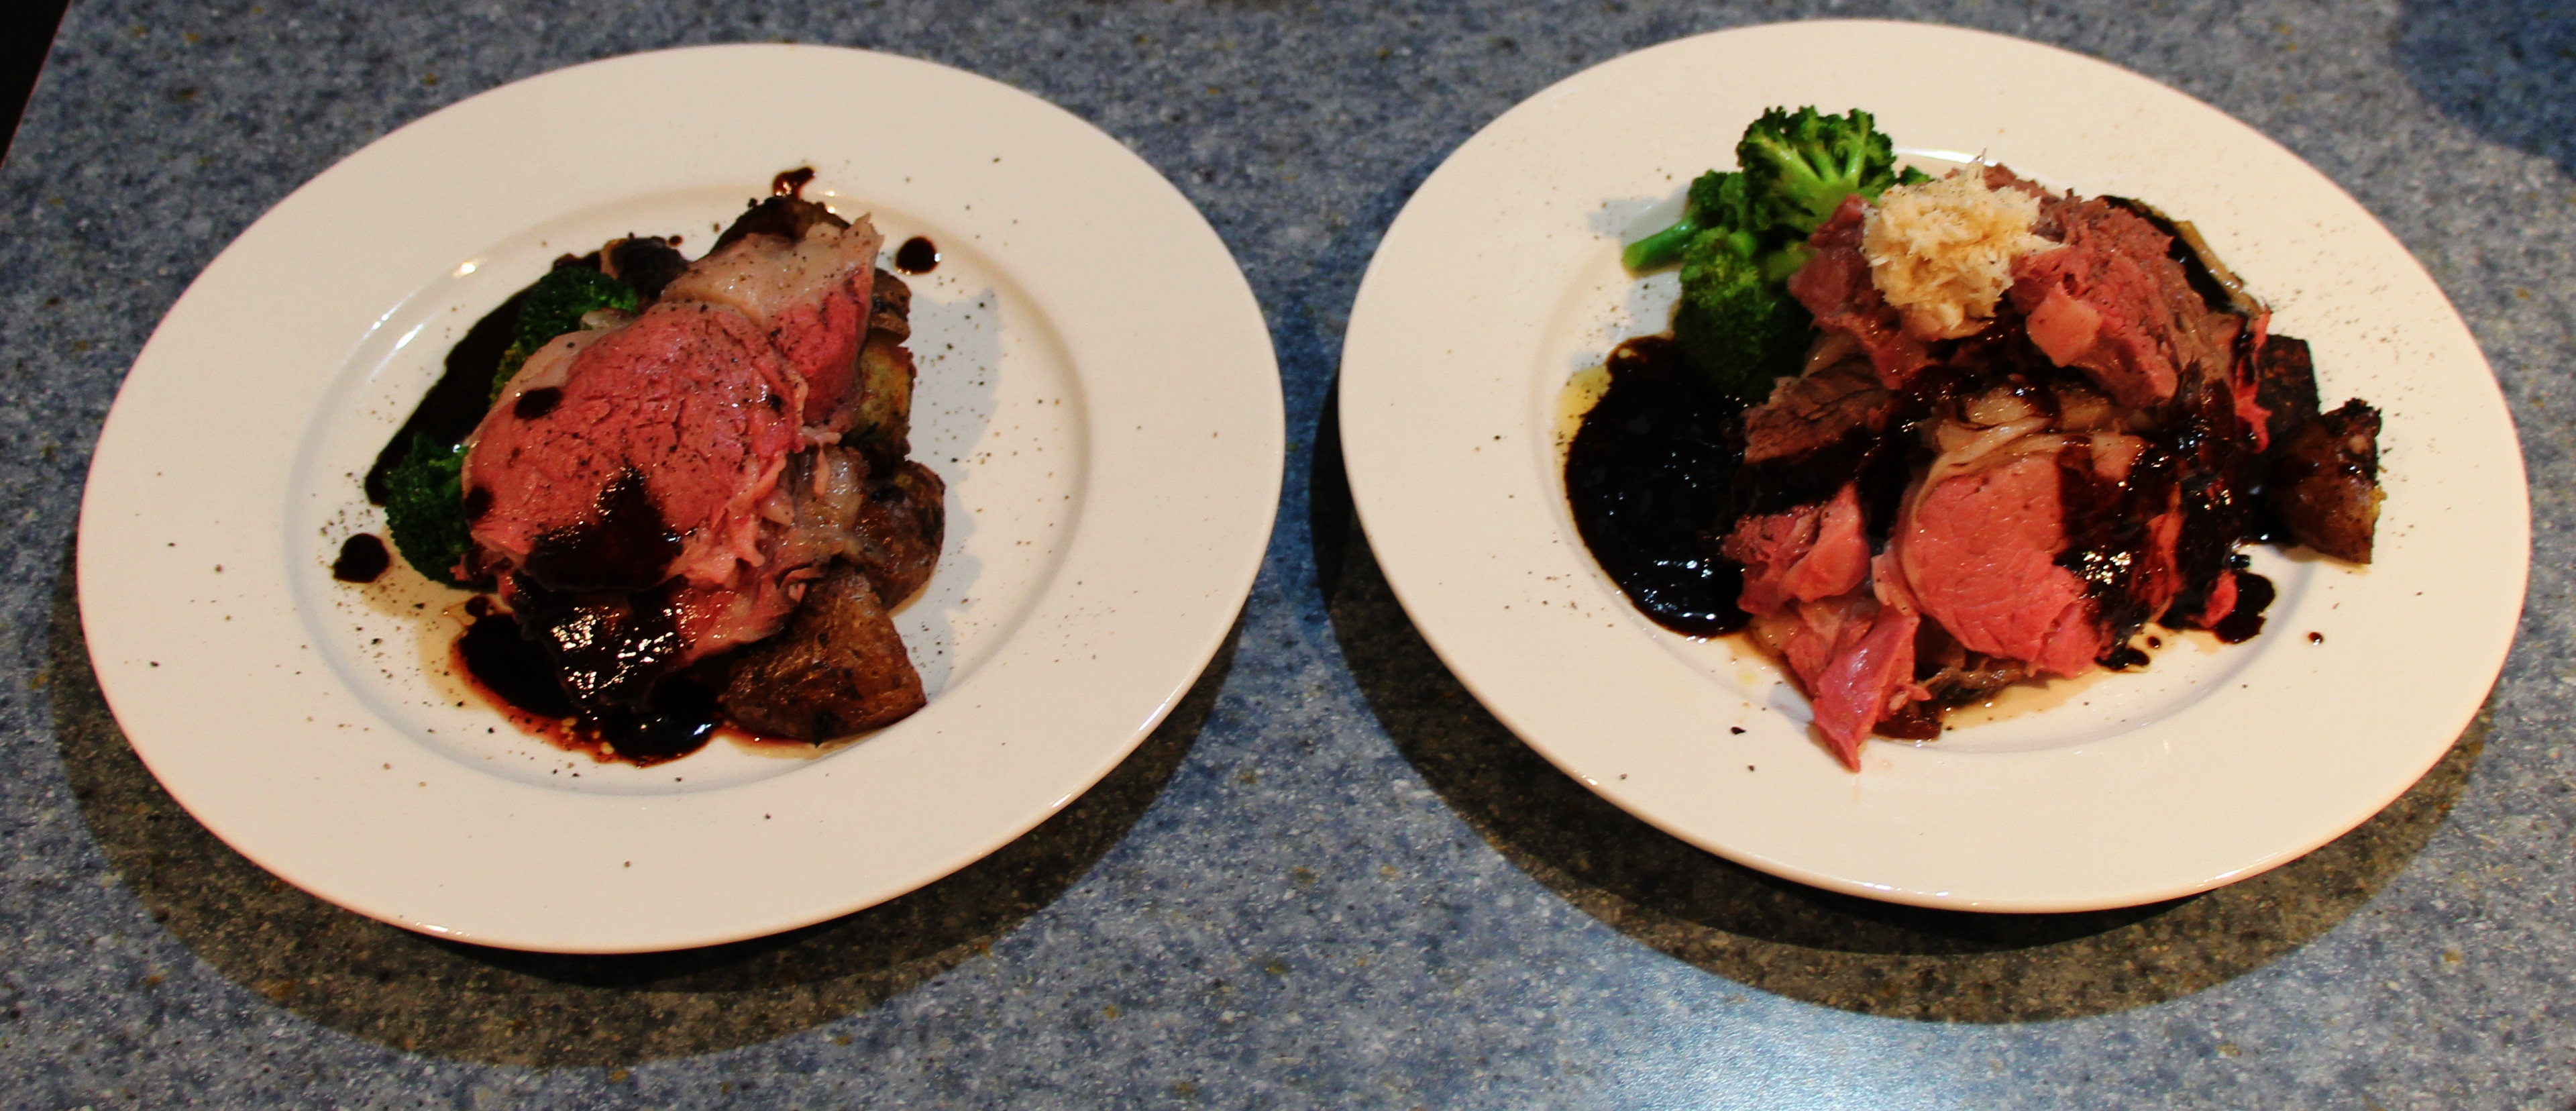 Prime Rib Time Chart: Two prime rib dinner plates.jpg - Wikimedia Commons,Chart